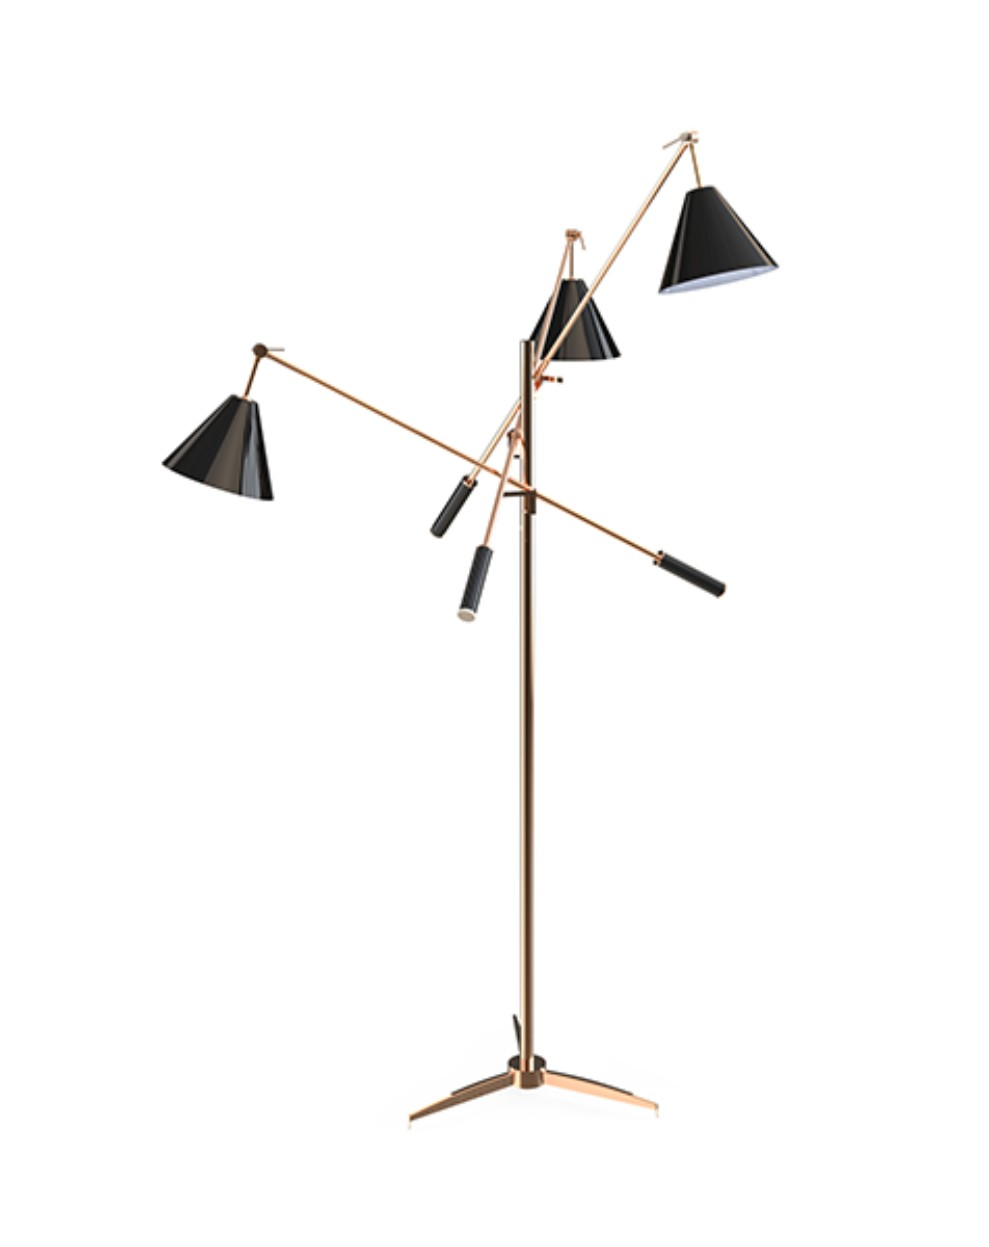 Tendencias para Decorar: Lampara de lujo para proyectos de medio siglo tendencias para decorar Tendencias para Decorar: Lampara de lujo para proyectos de medio siglo Essential Home Takeover The Best Mid Century Floor Lamp For Your Home 6